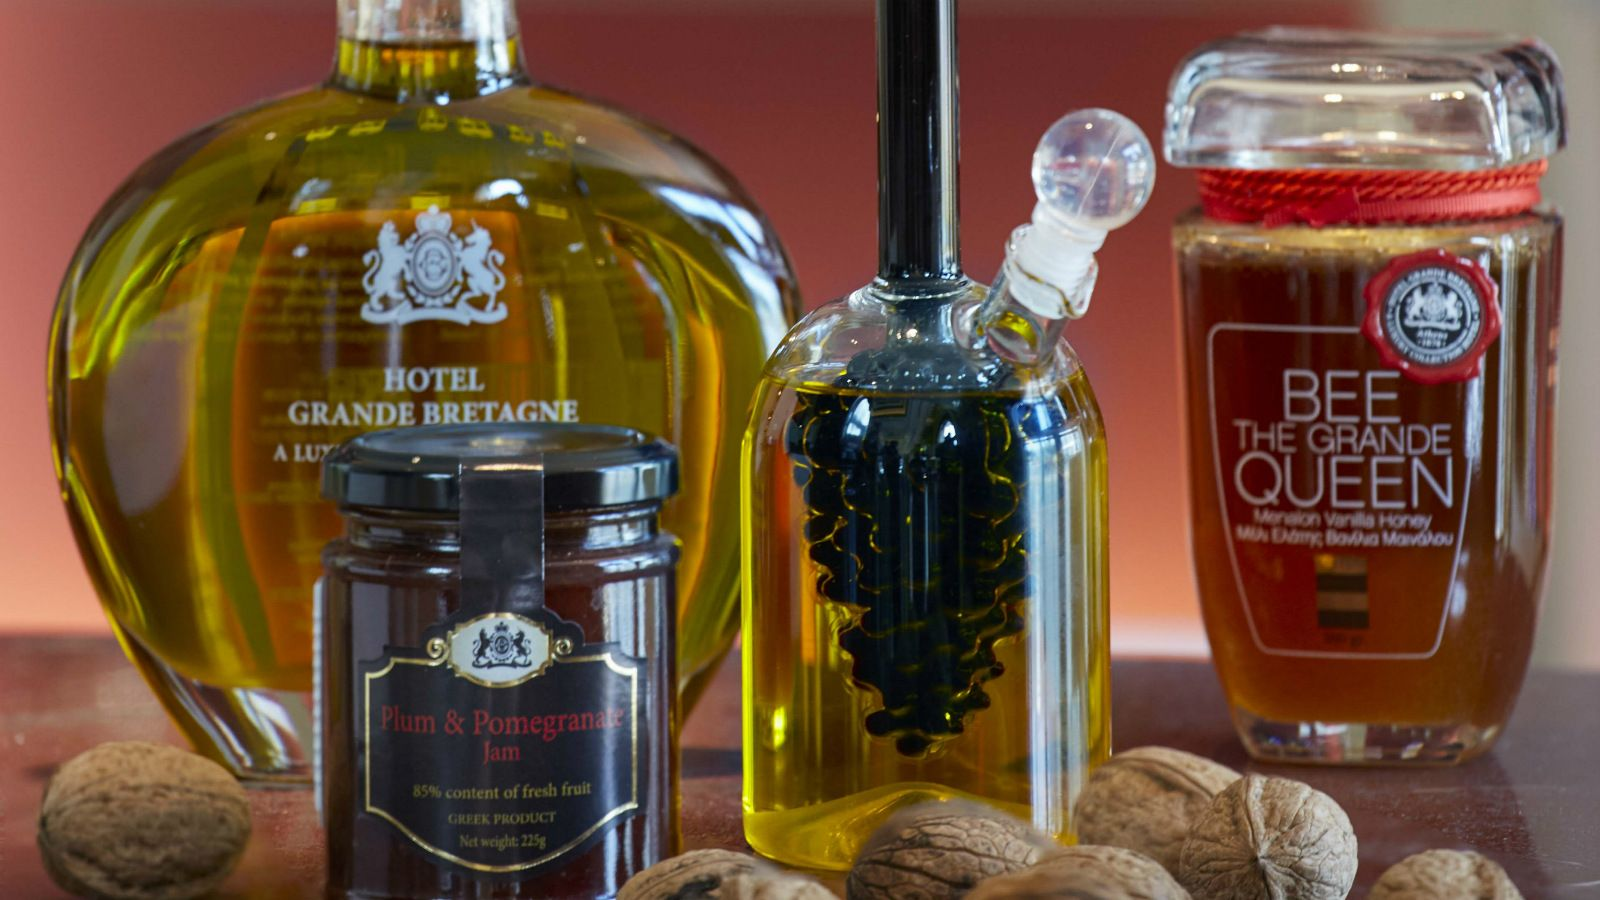 GB-Corner-Gifts-Flavors-concept-store_Greek-local-products-honey_oil_Hotel-Grande-Bretagne-Athens-Greece